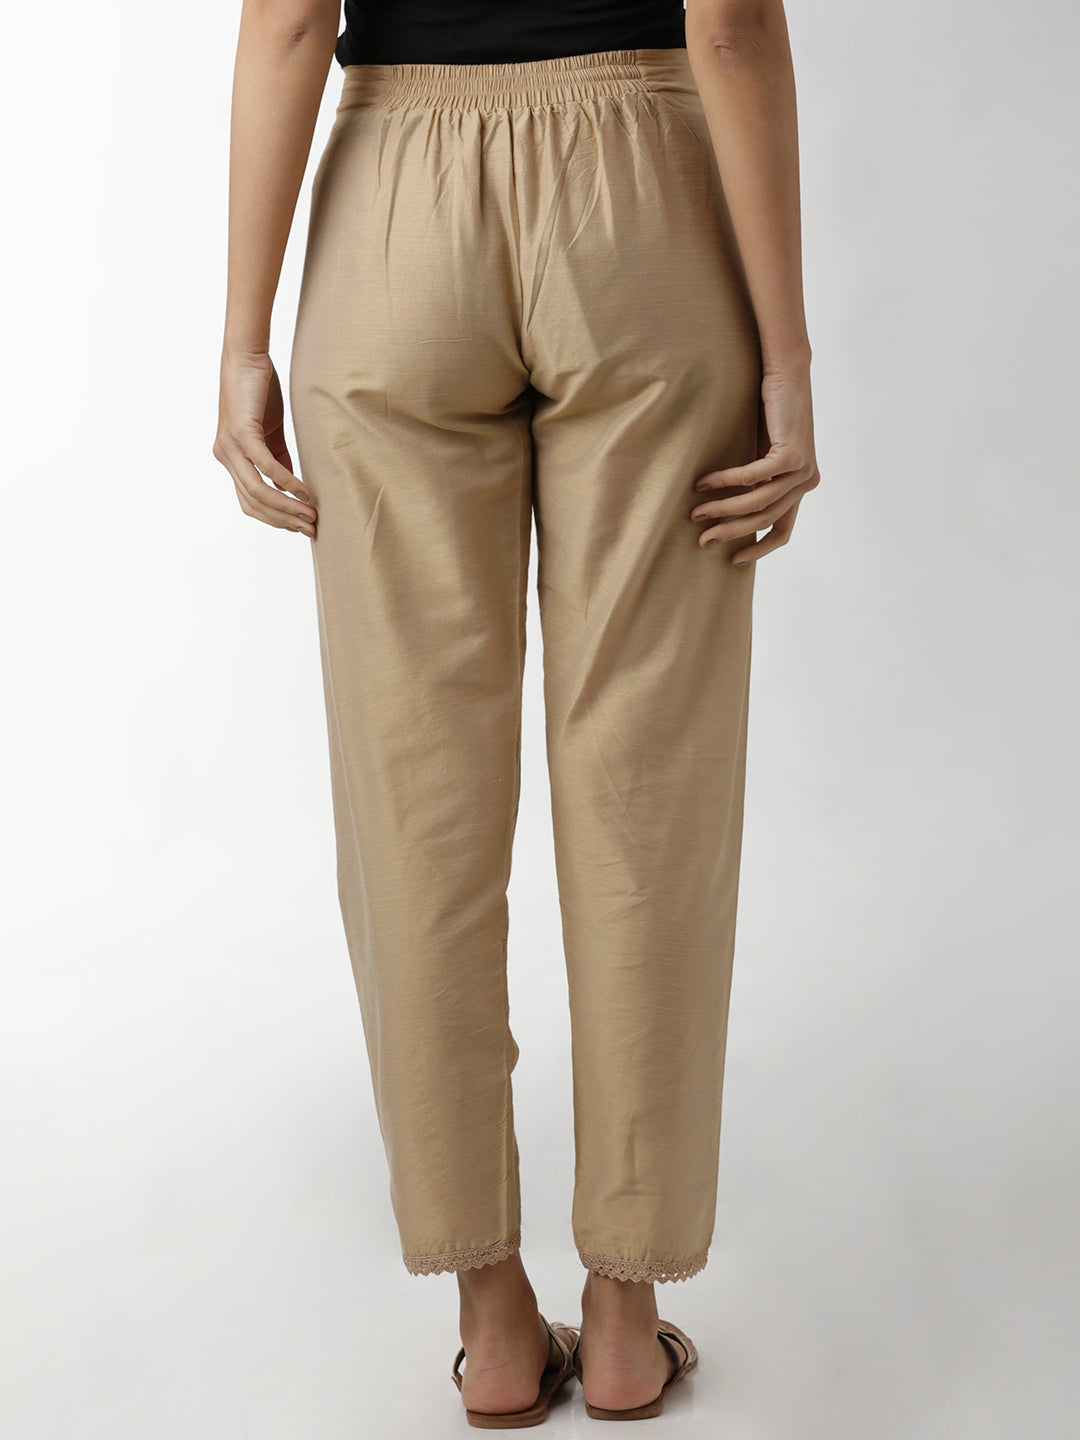 Breya Silk Lace Hem Narrow Beige Trouser